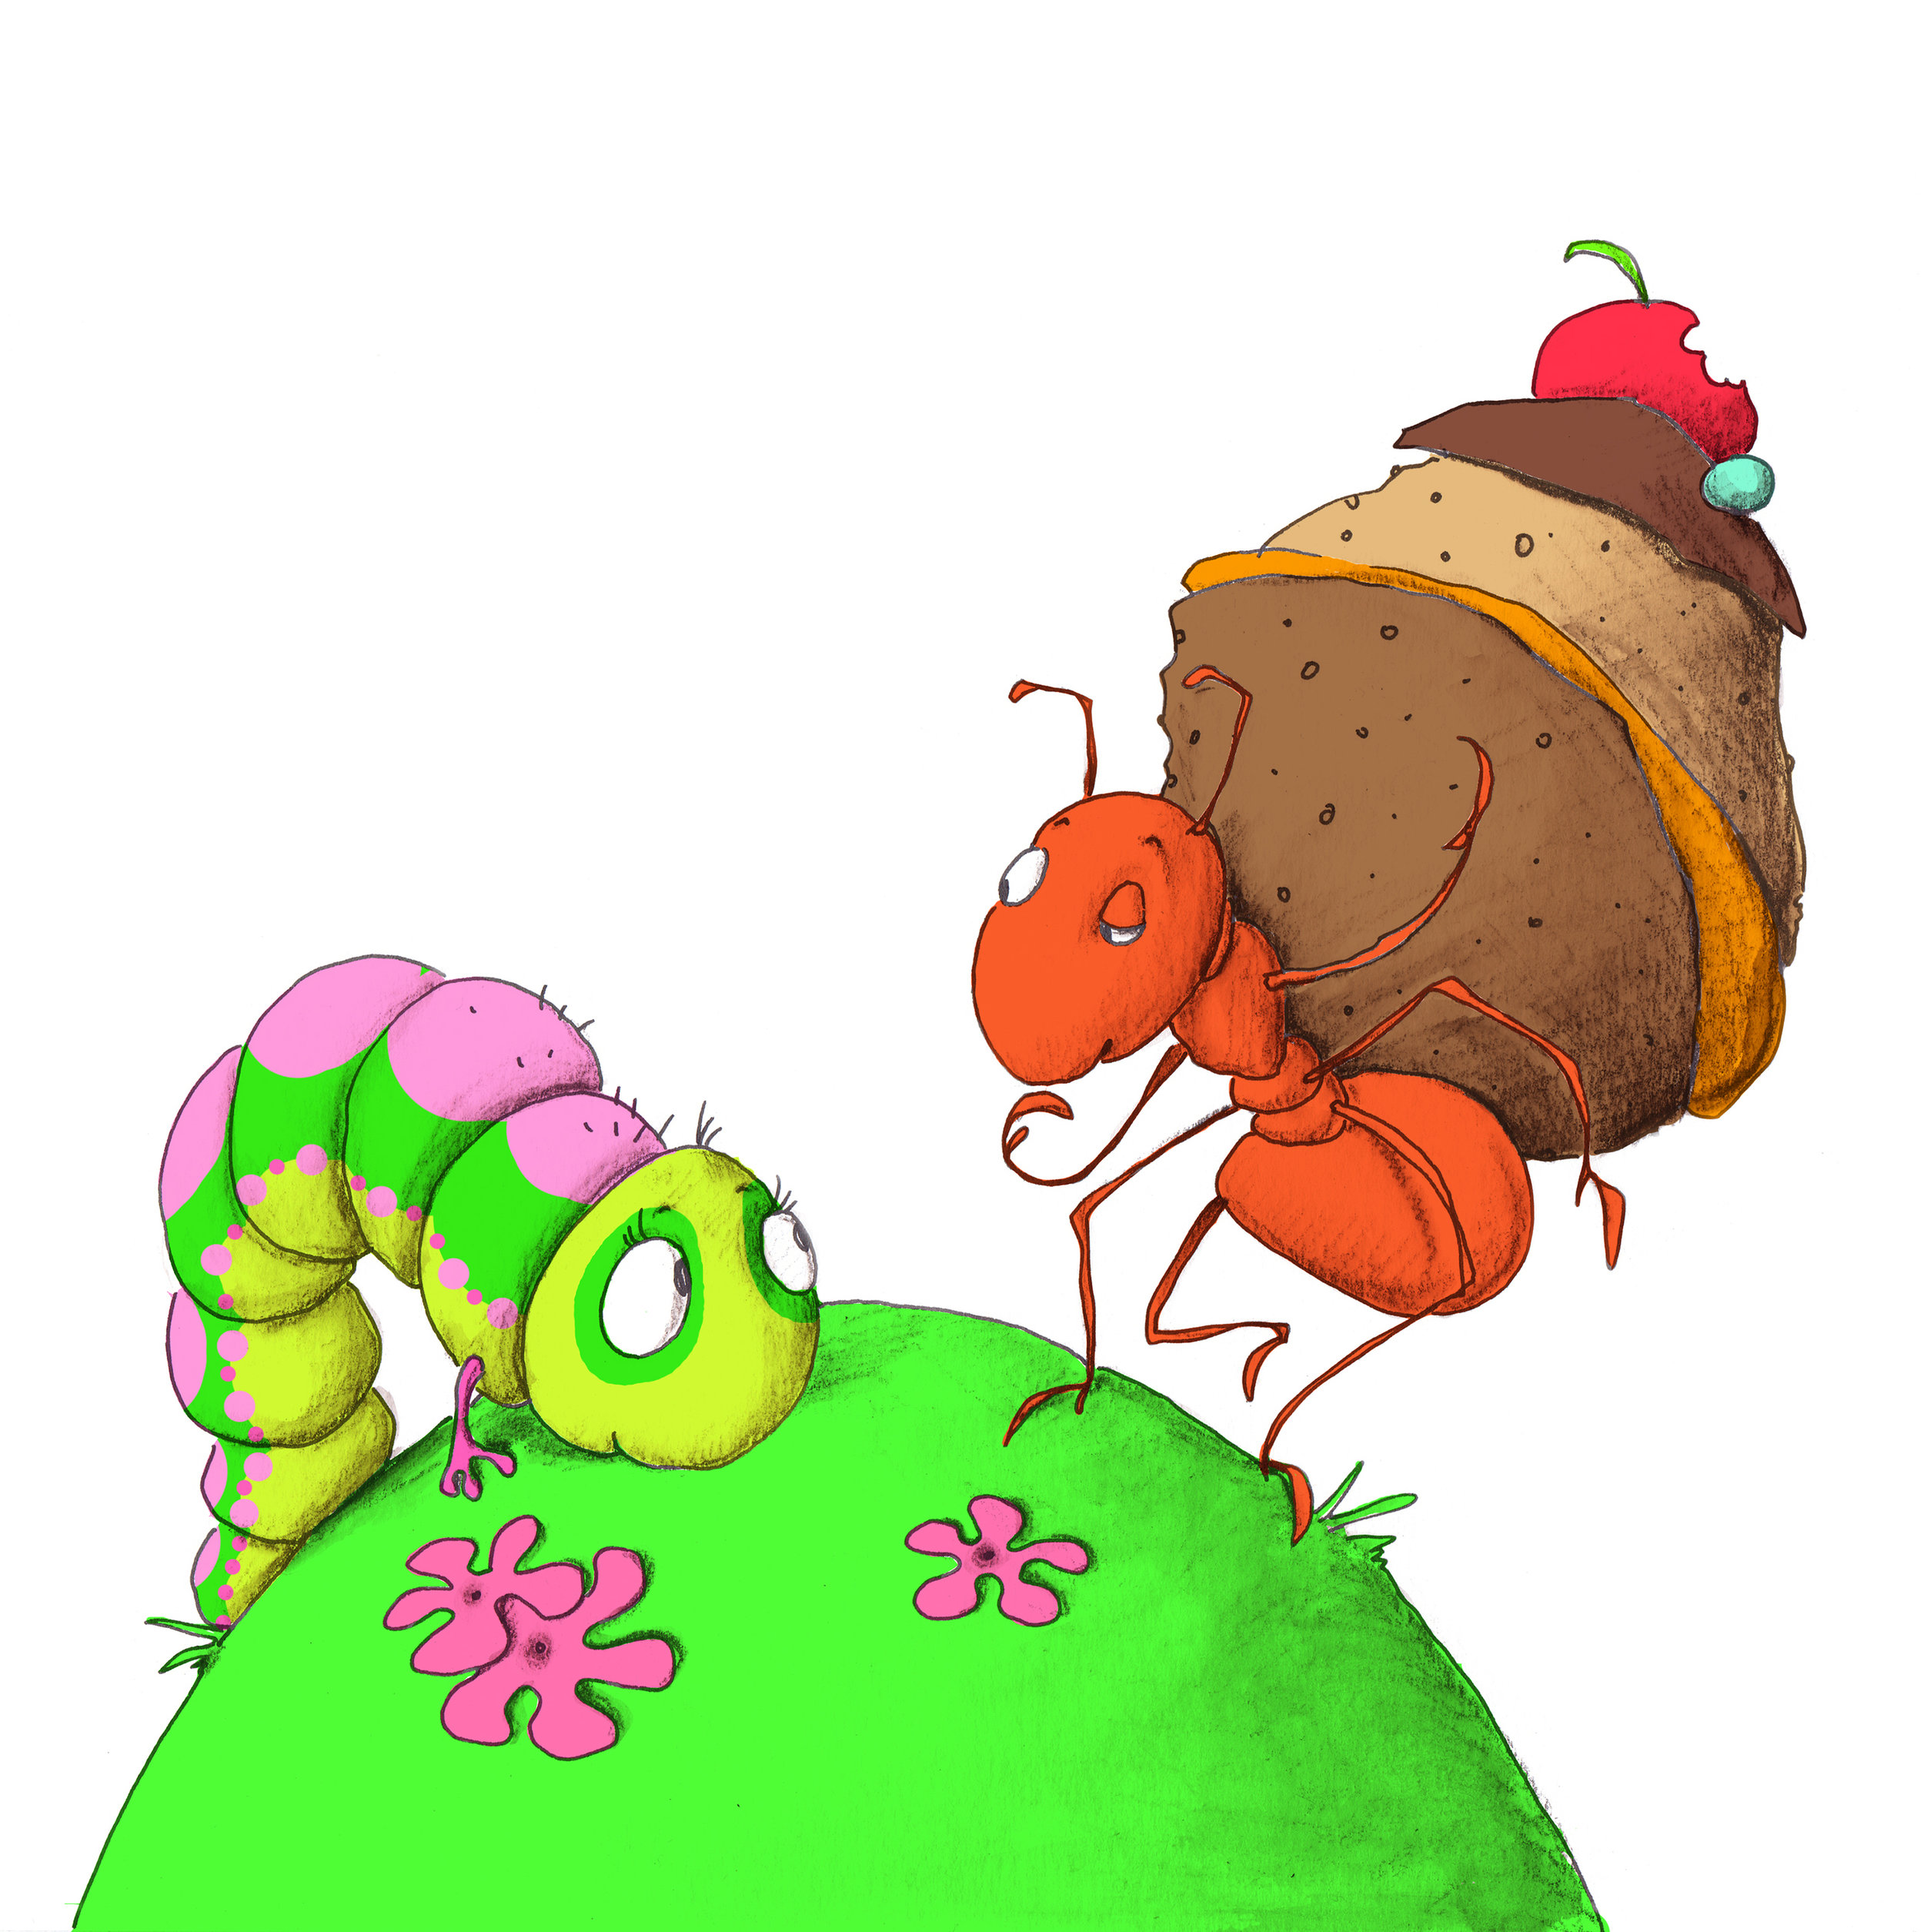 Download image from Little Ant and the Butterfly.